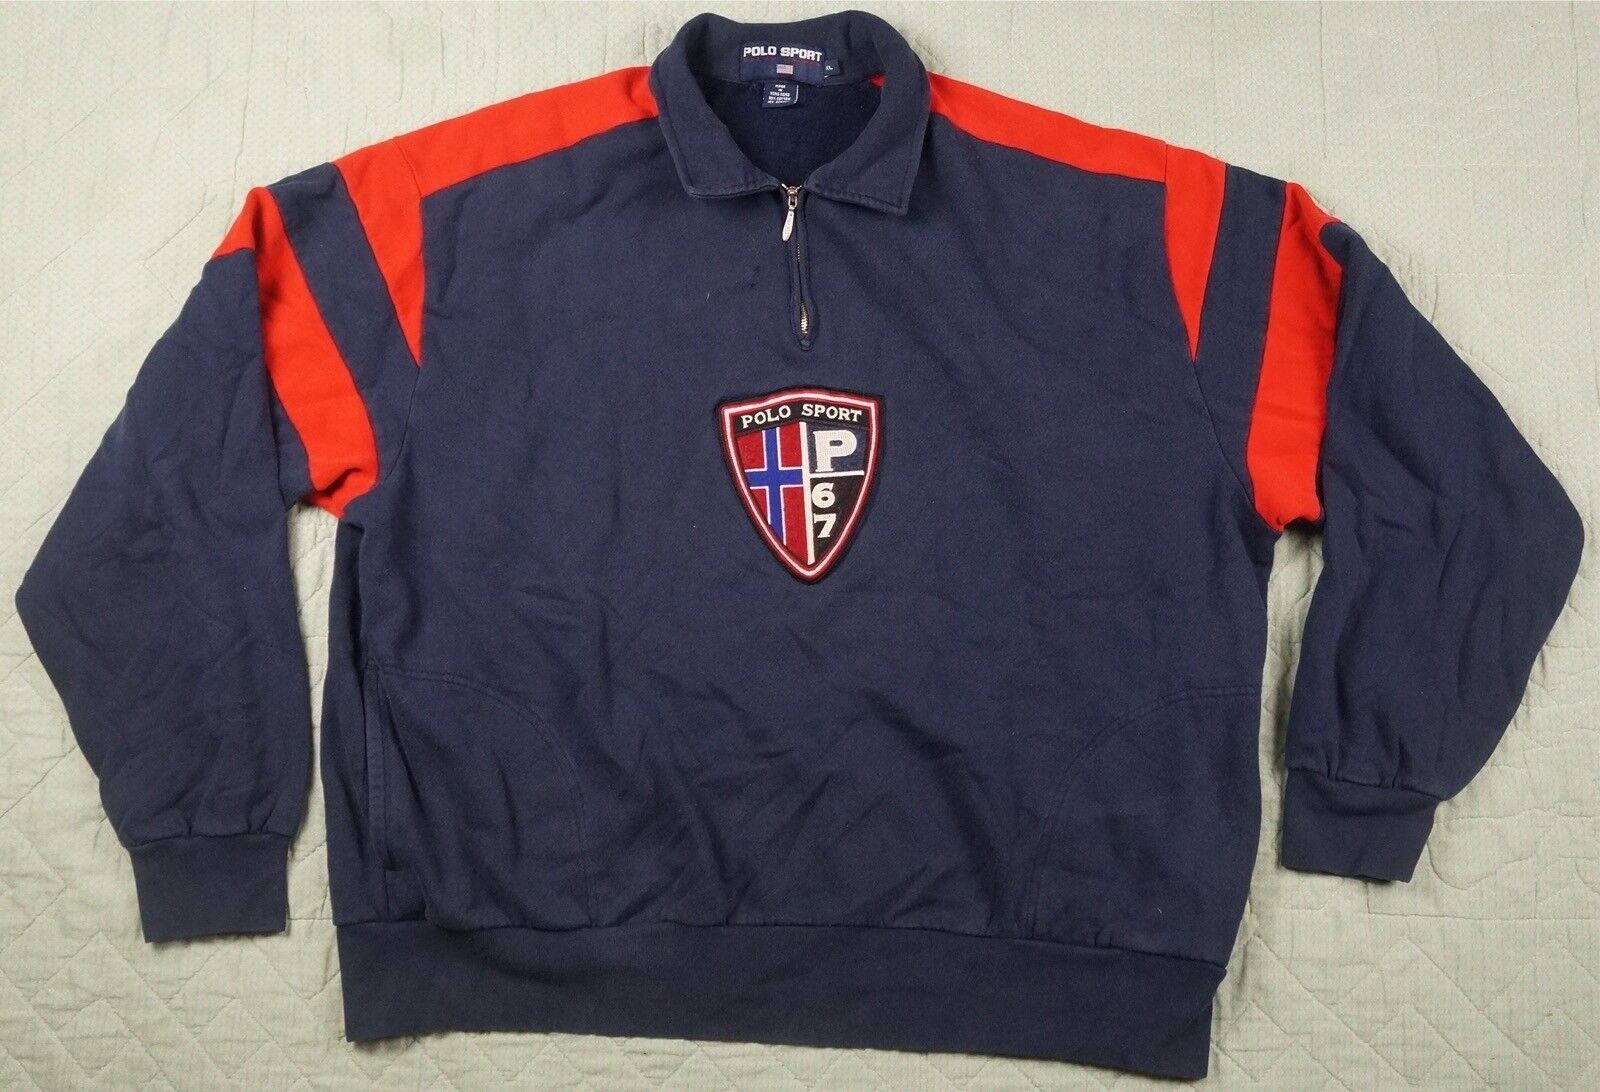 Rare VTG POLO SPORT Ralph Lauren Spell Out P67 Police Shield Sweatshirt 90s XL